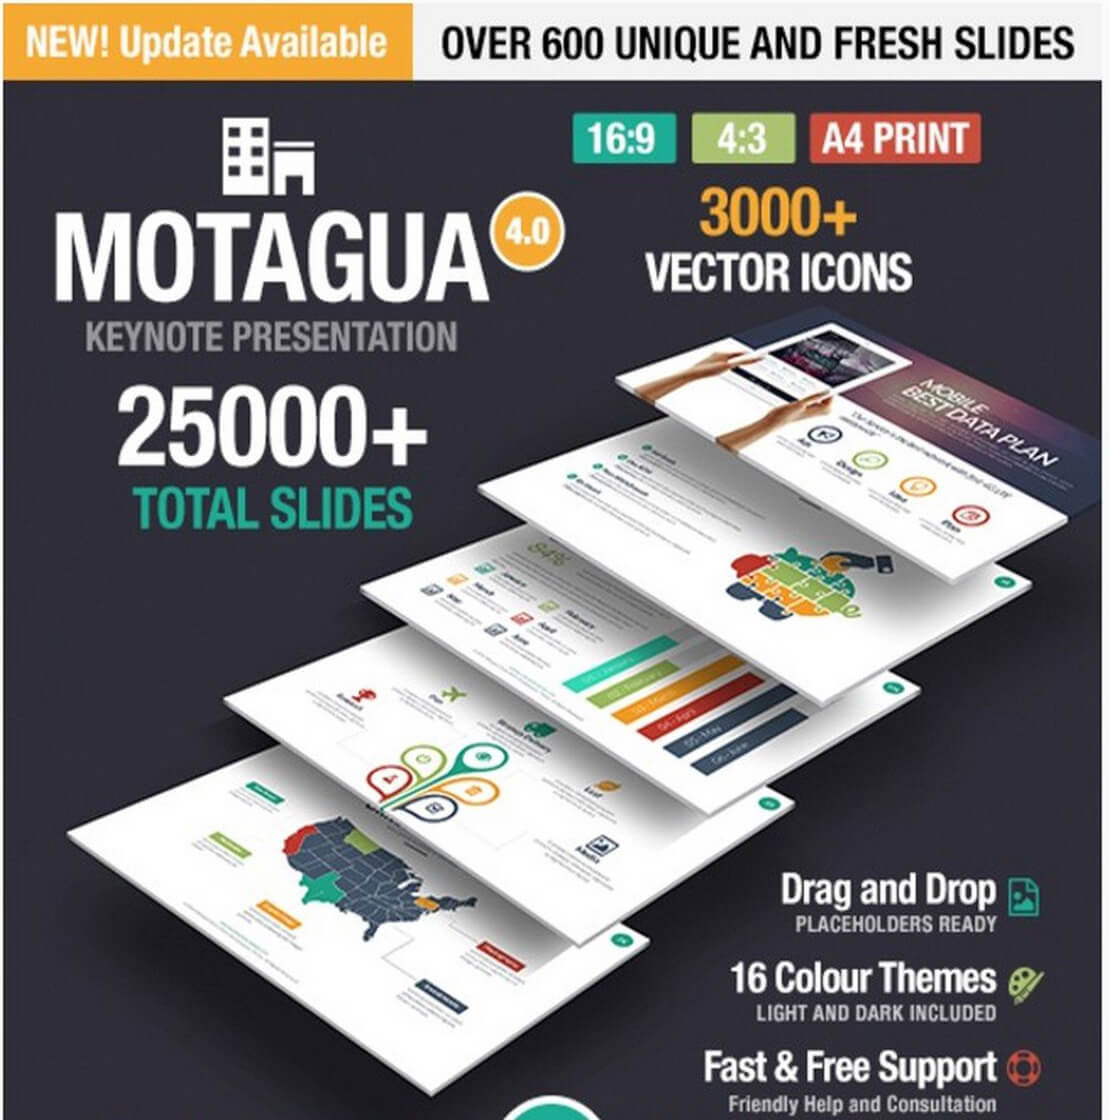 motagua Best Keynote Template For